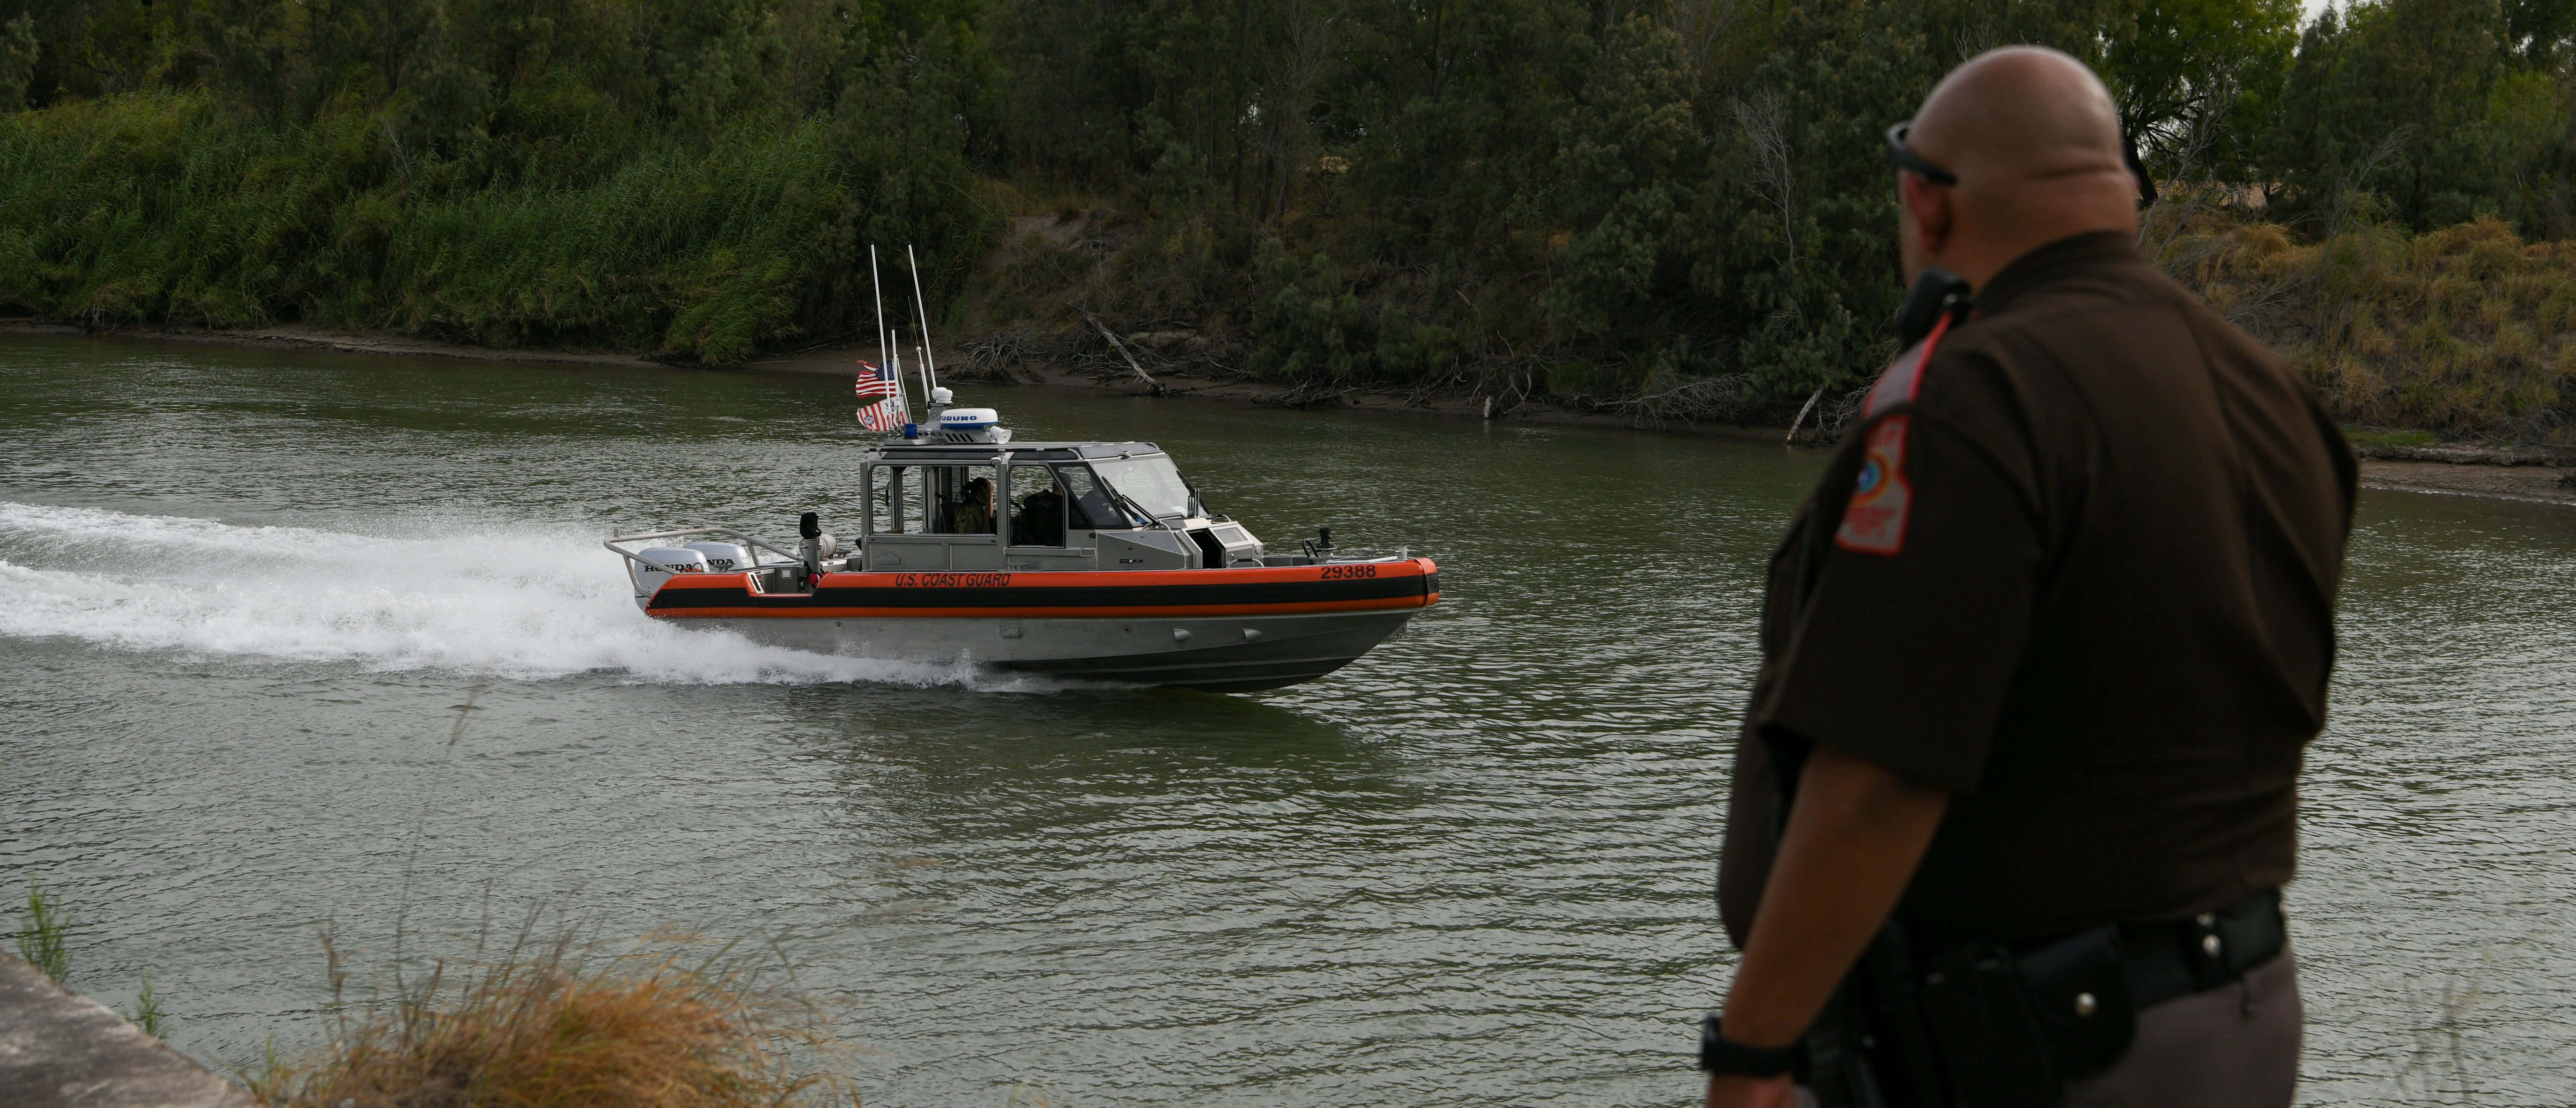 Drownings Triple Along Dangerous Section Of Border, Where Number Of Rescues Increases By 1000%: Report